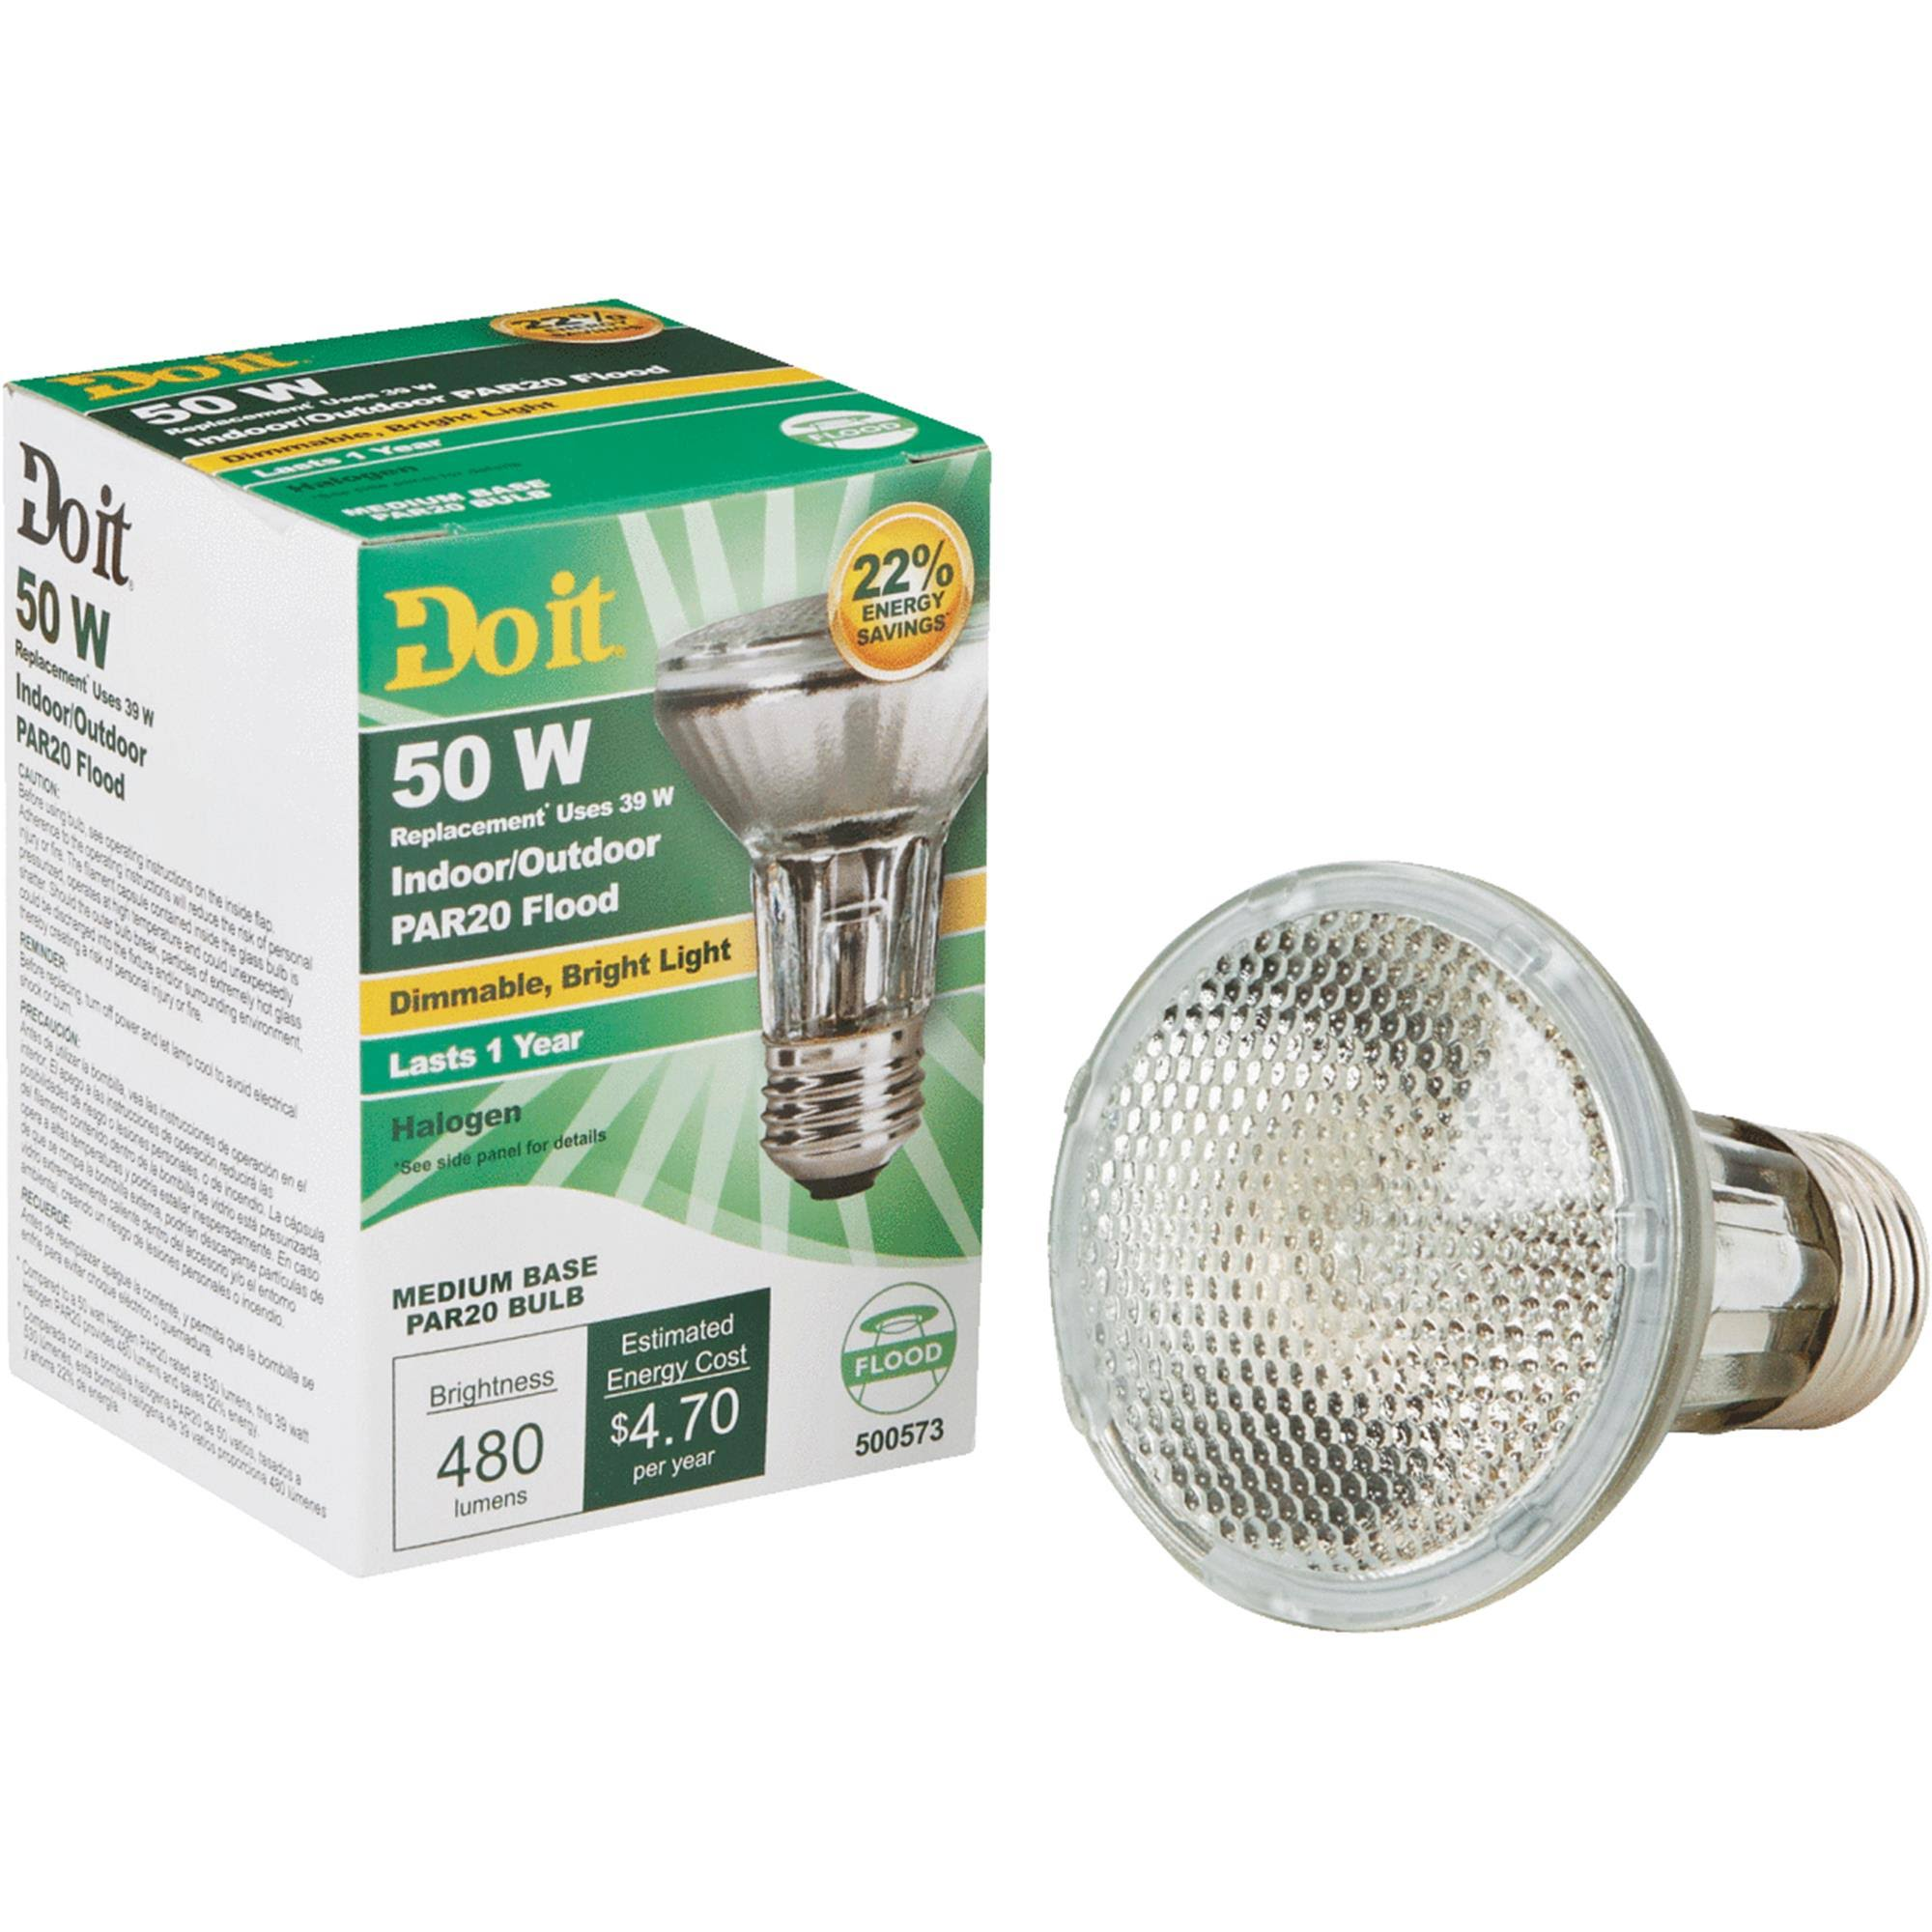 Do It PAR20 Halogen Floodlight Light Bulb - 322677